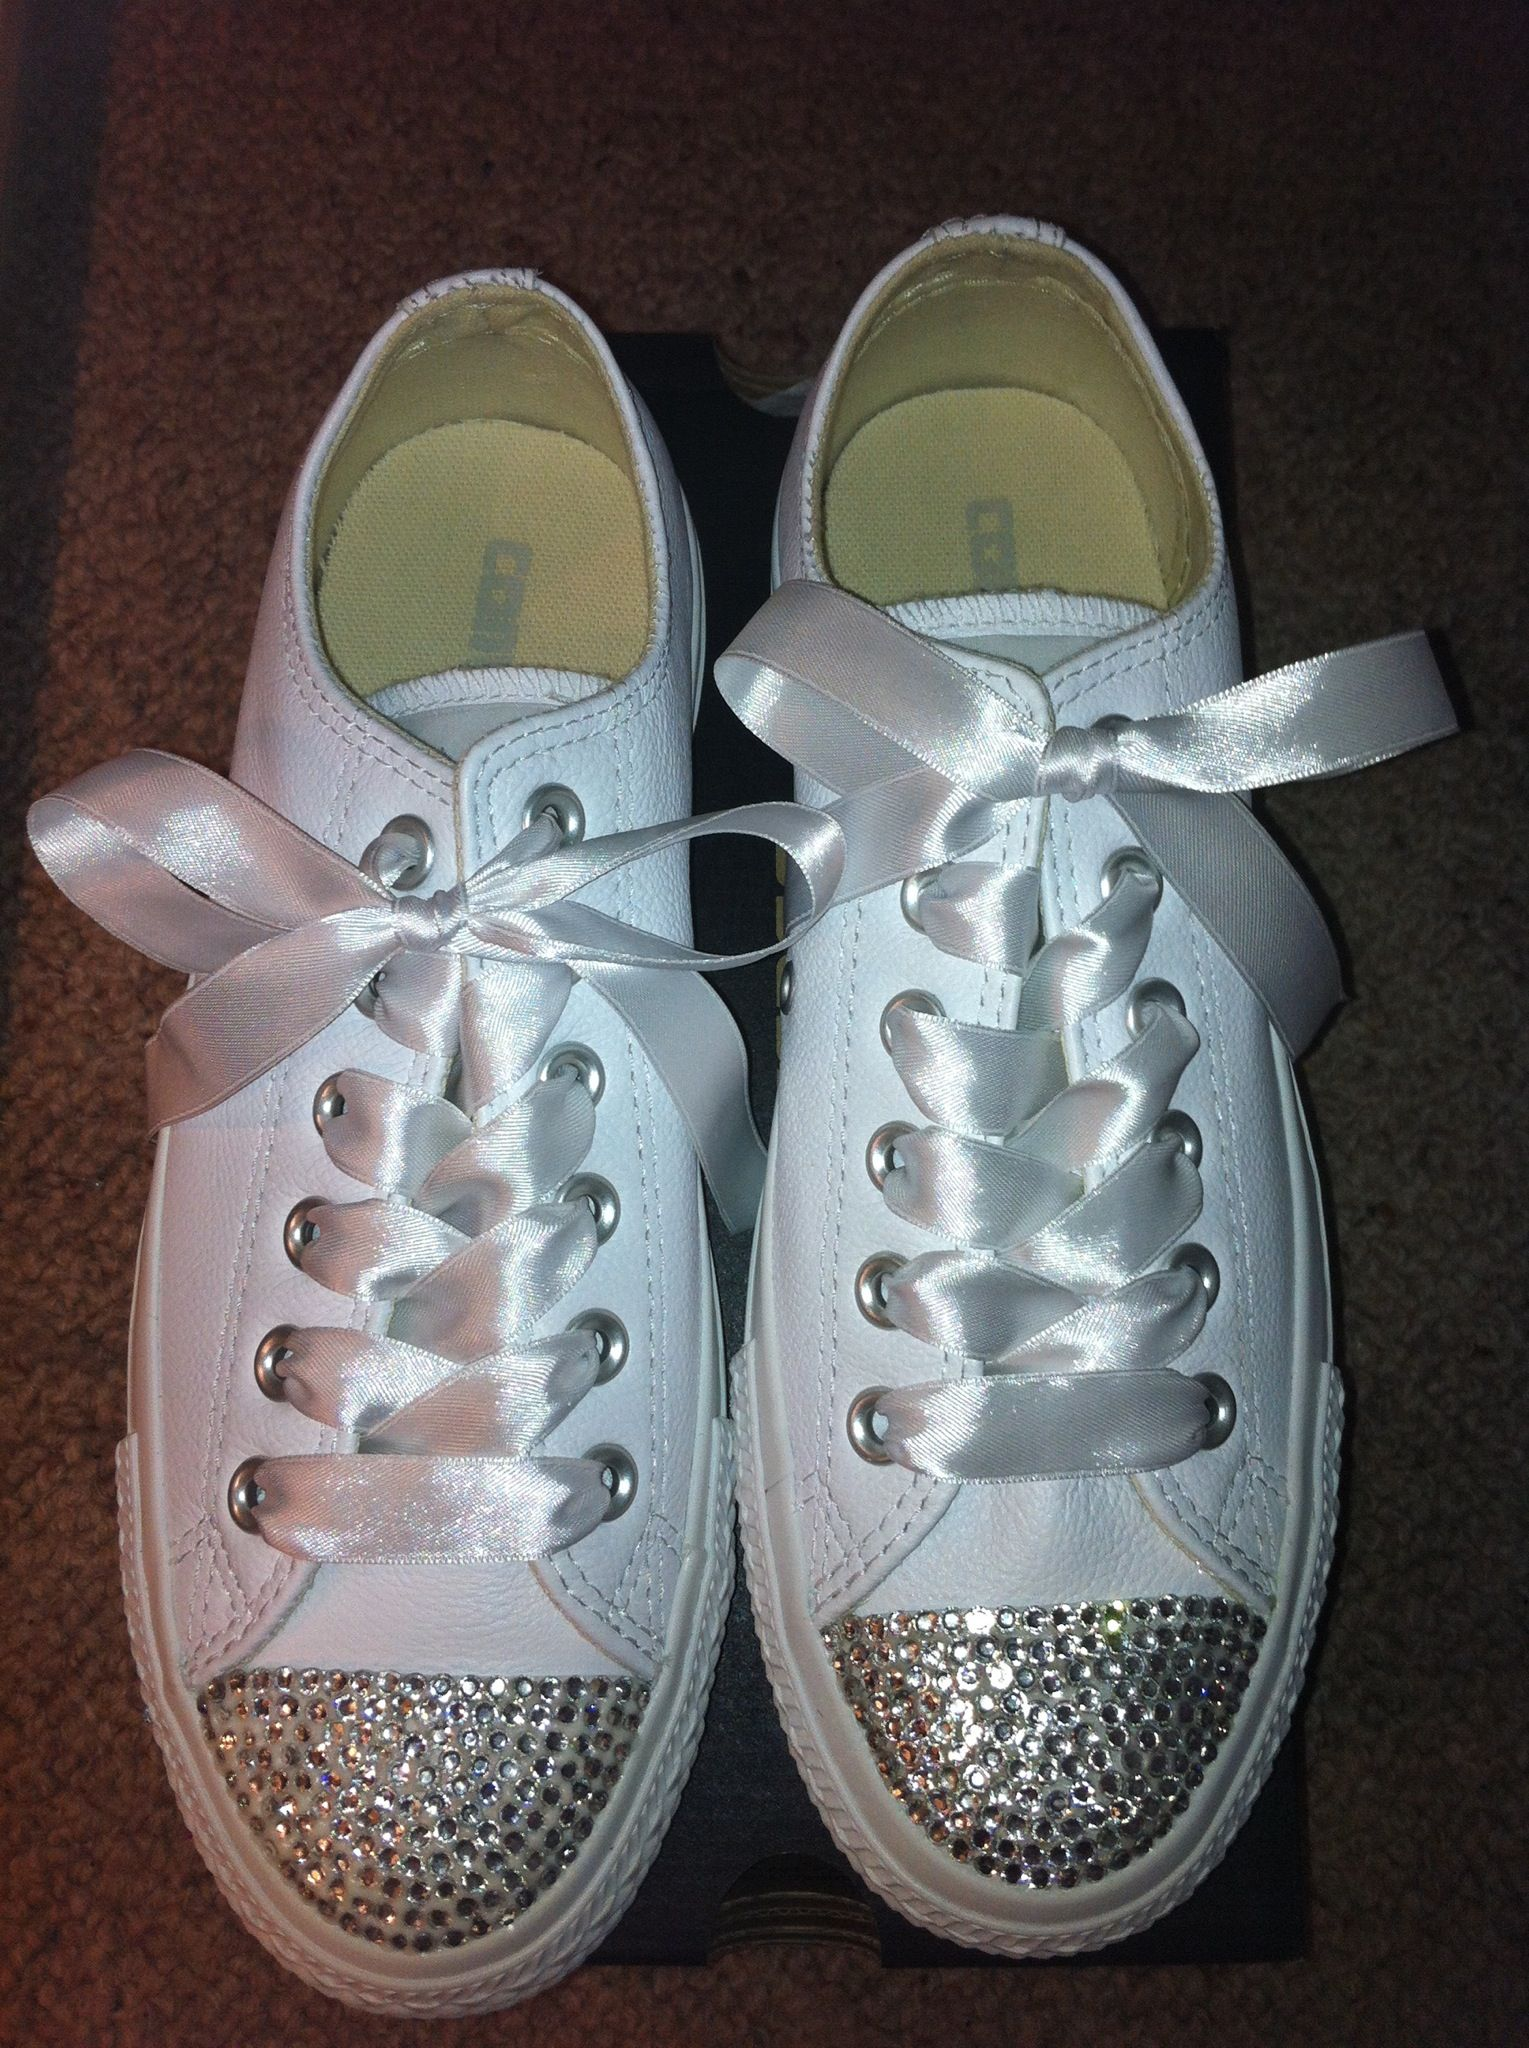 New Crystallised Converse. Email SRCrystalBoutique gmail.com for further  info xox 679dc03516